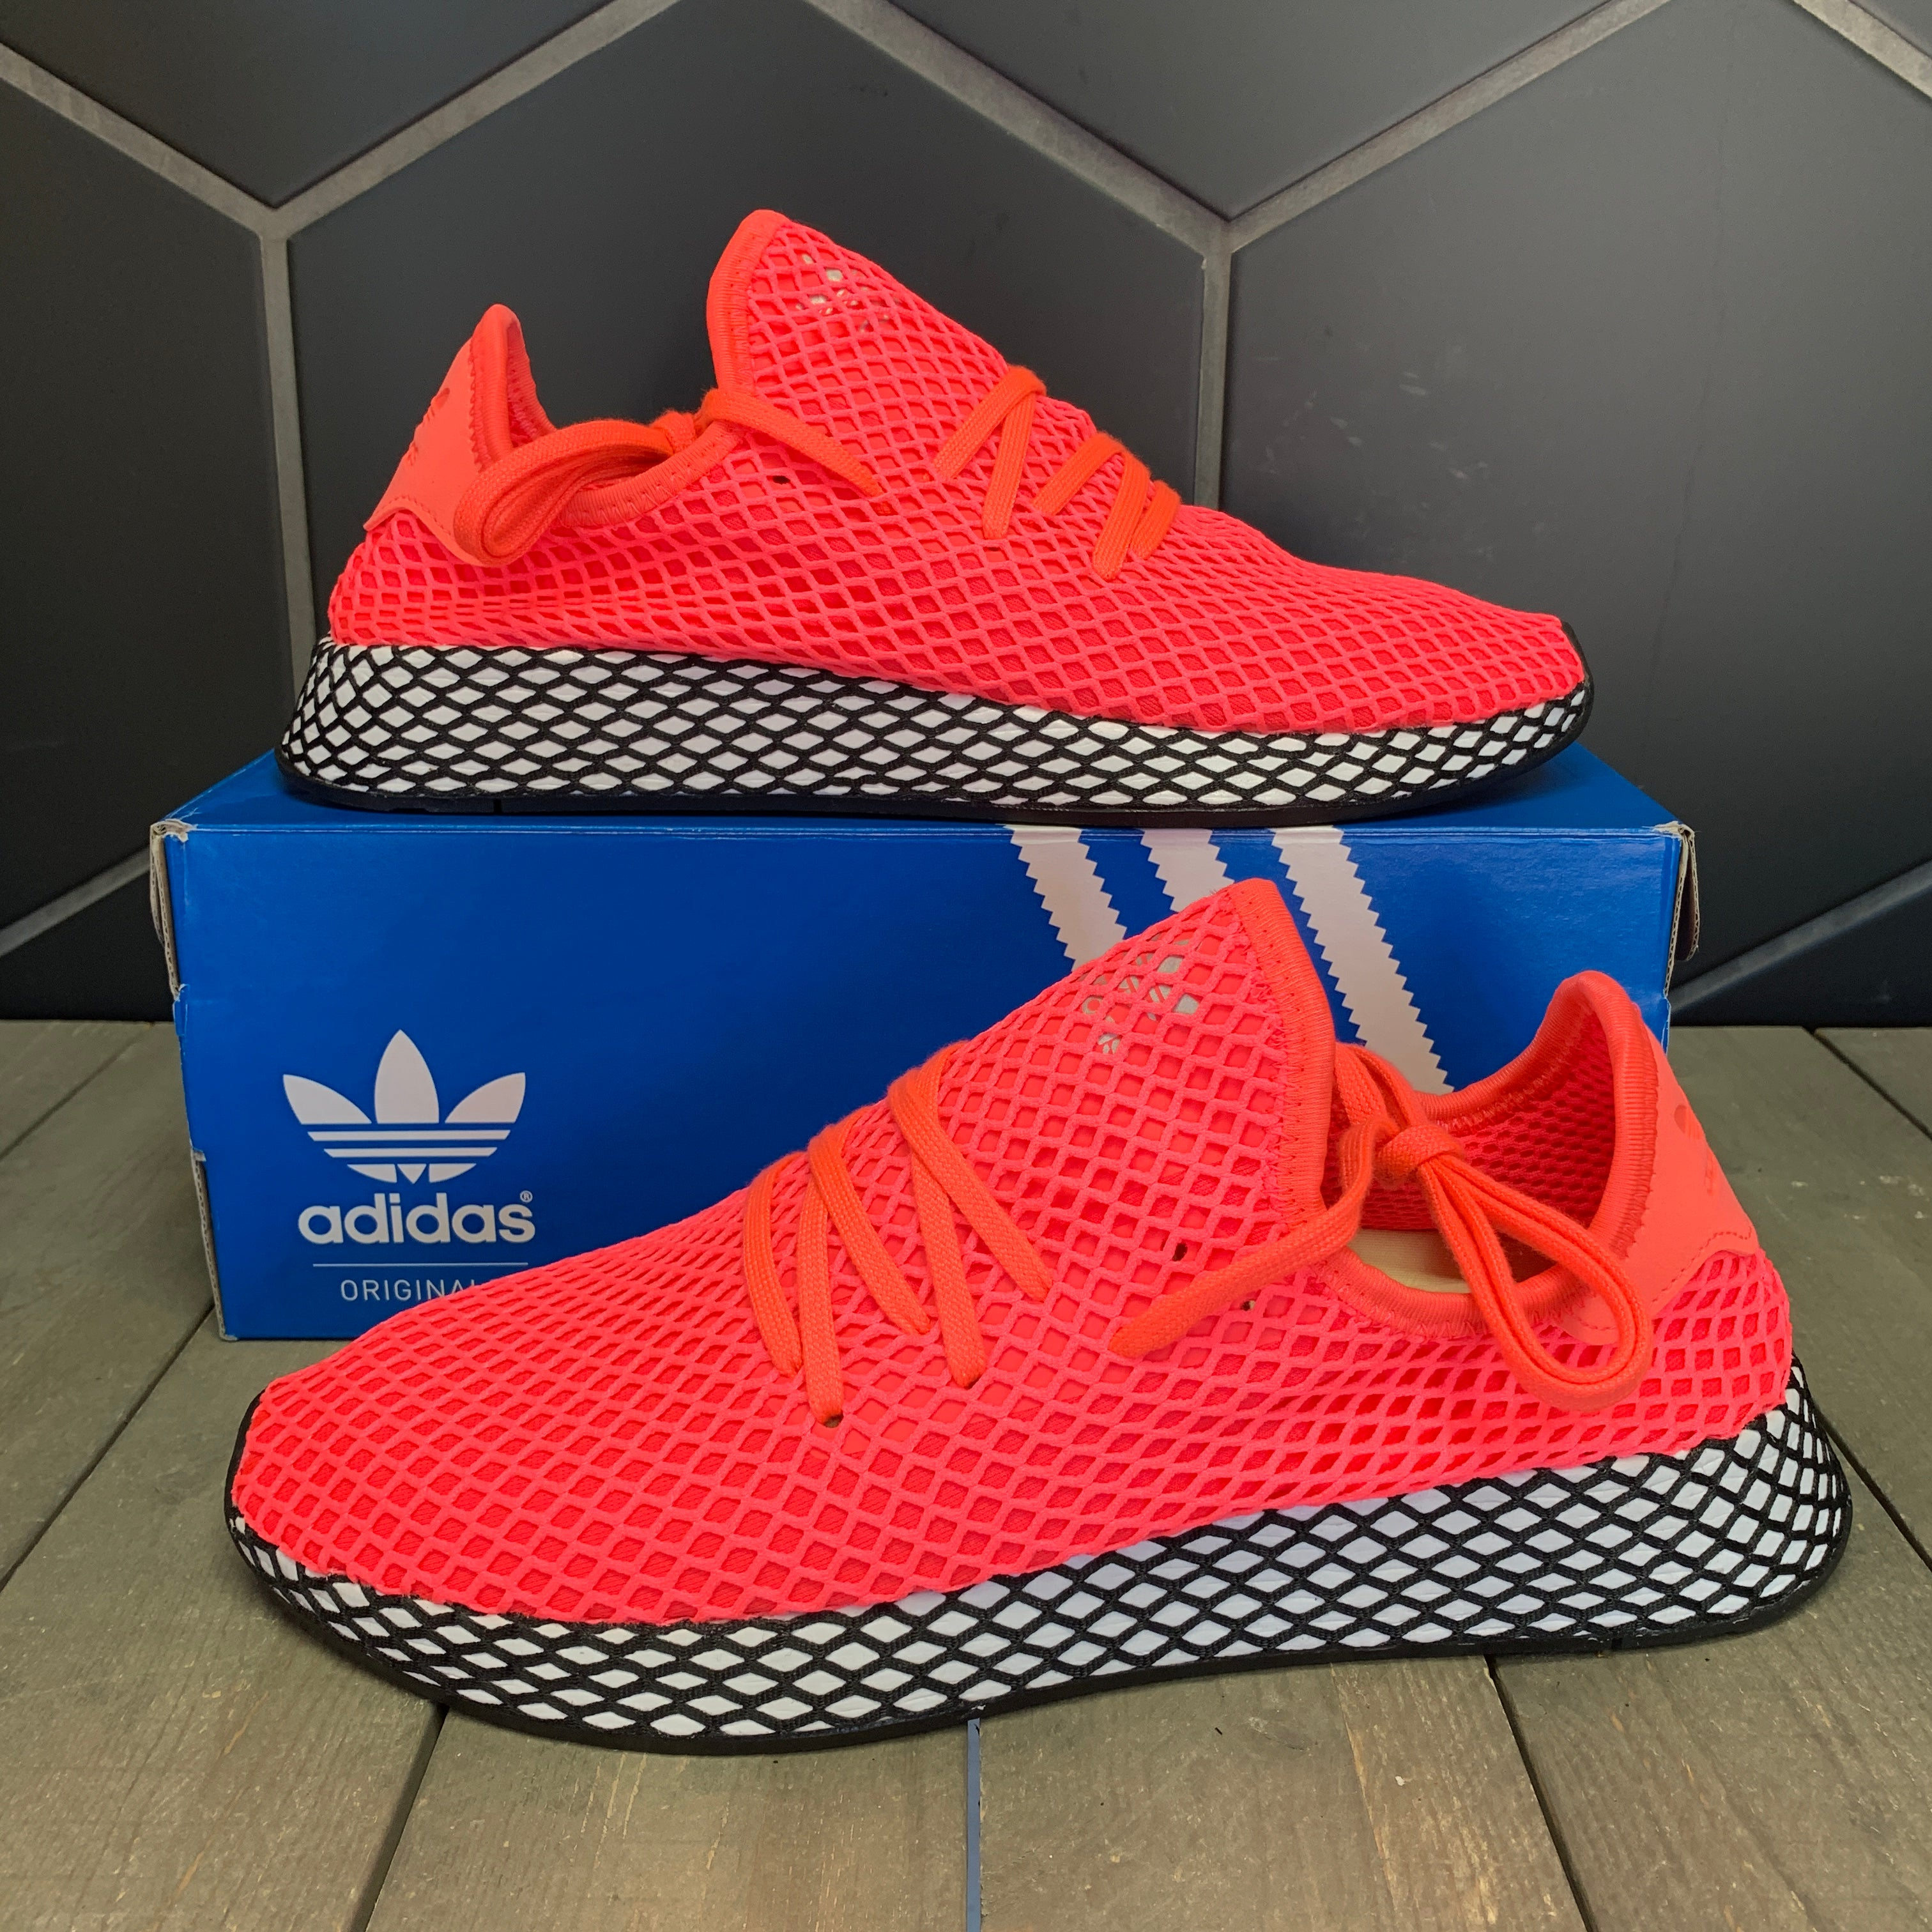 New W/ Box! Adidas Deerupt Runner Turbo Red Running Shoes (Multiple Sizes)